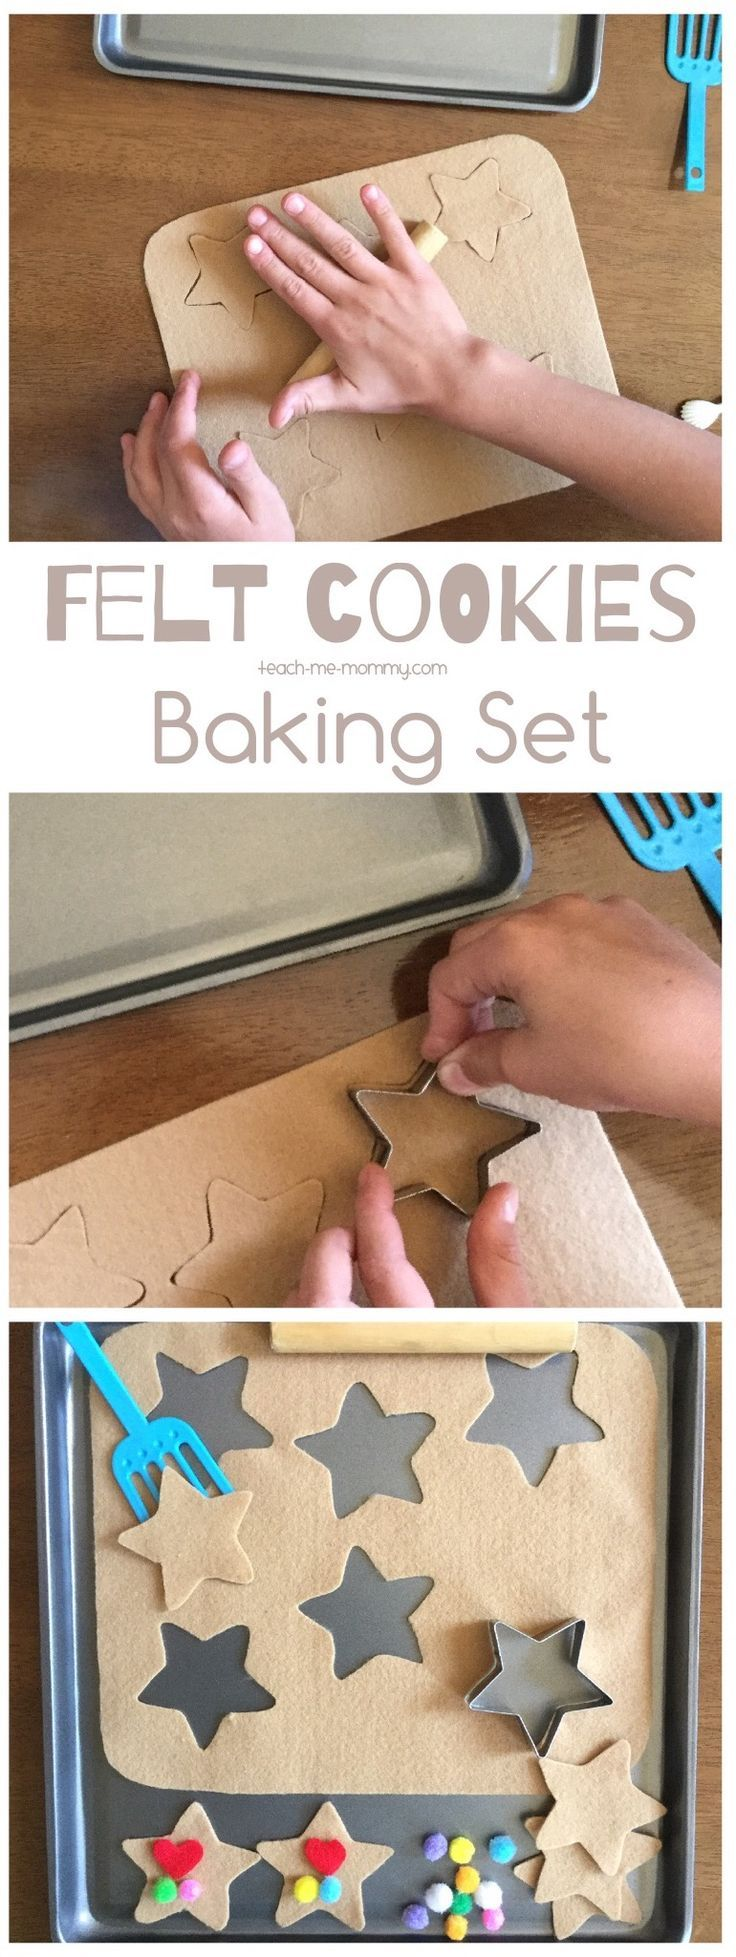 A fun felt cookies baking set to make as a gift or activity!